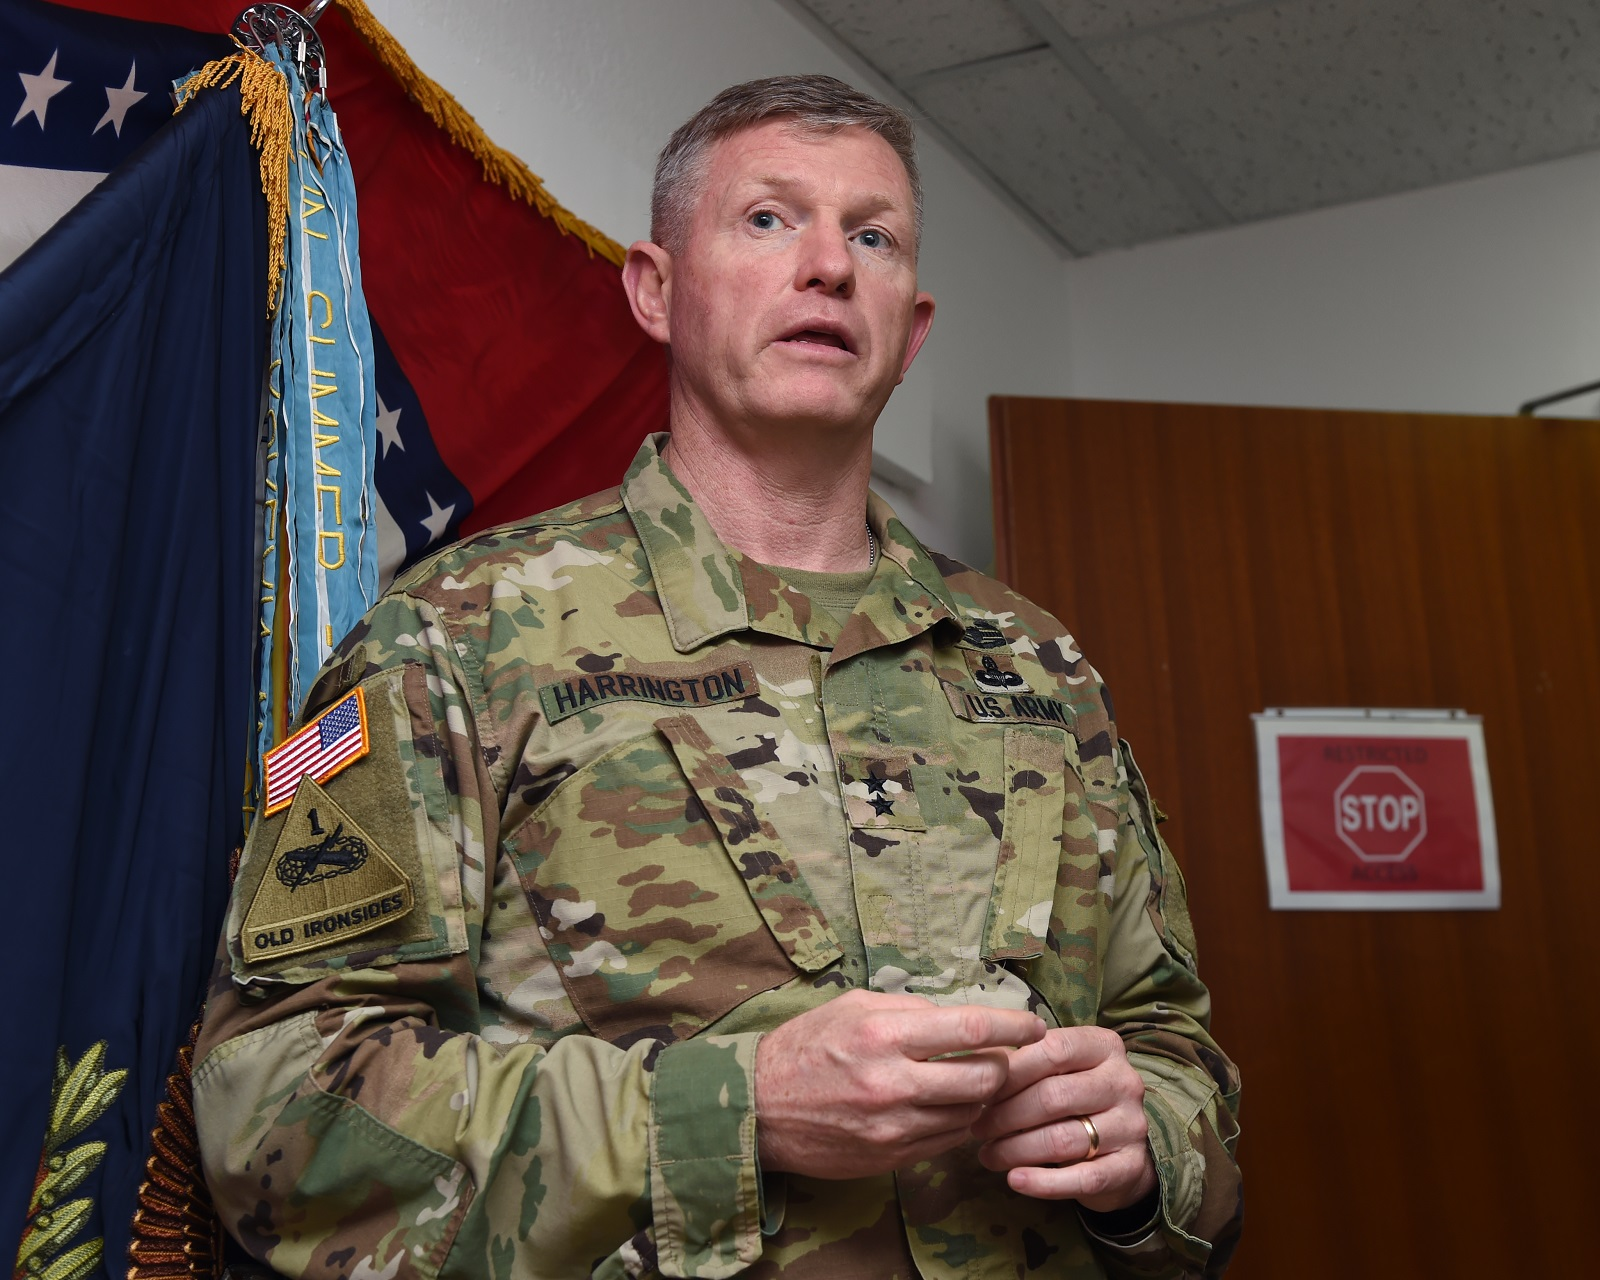 US Army Africa commander suspended, under investigation for sending suggestive messages to soldier's wife